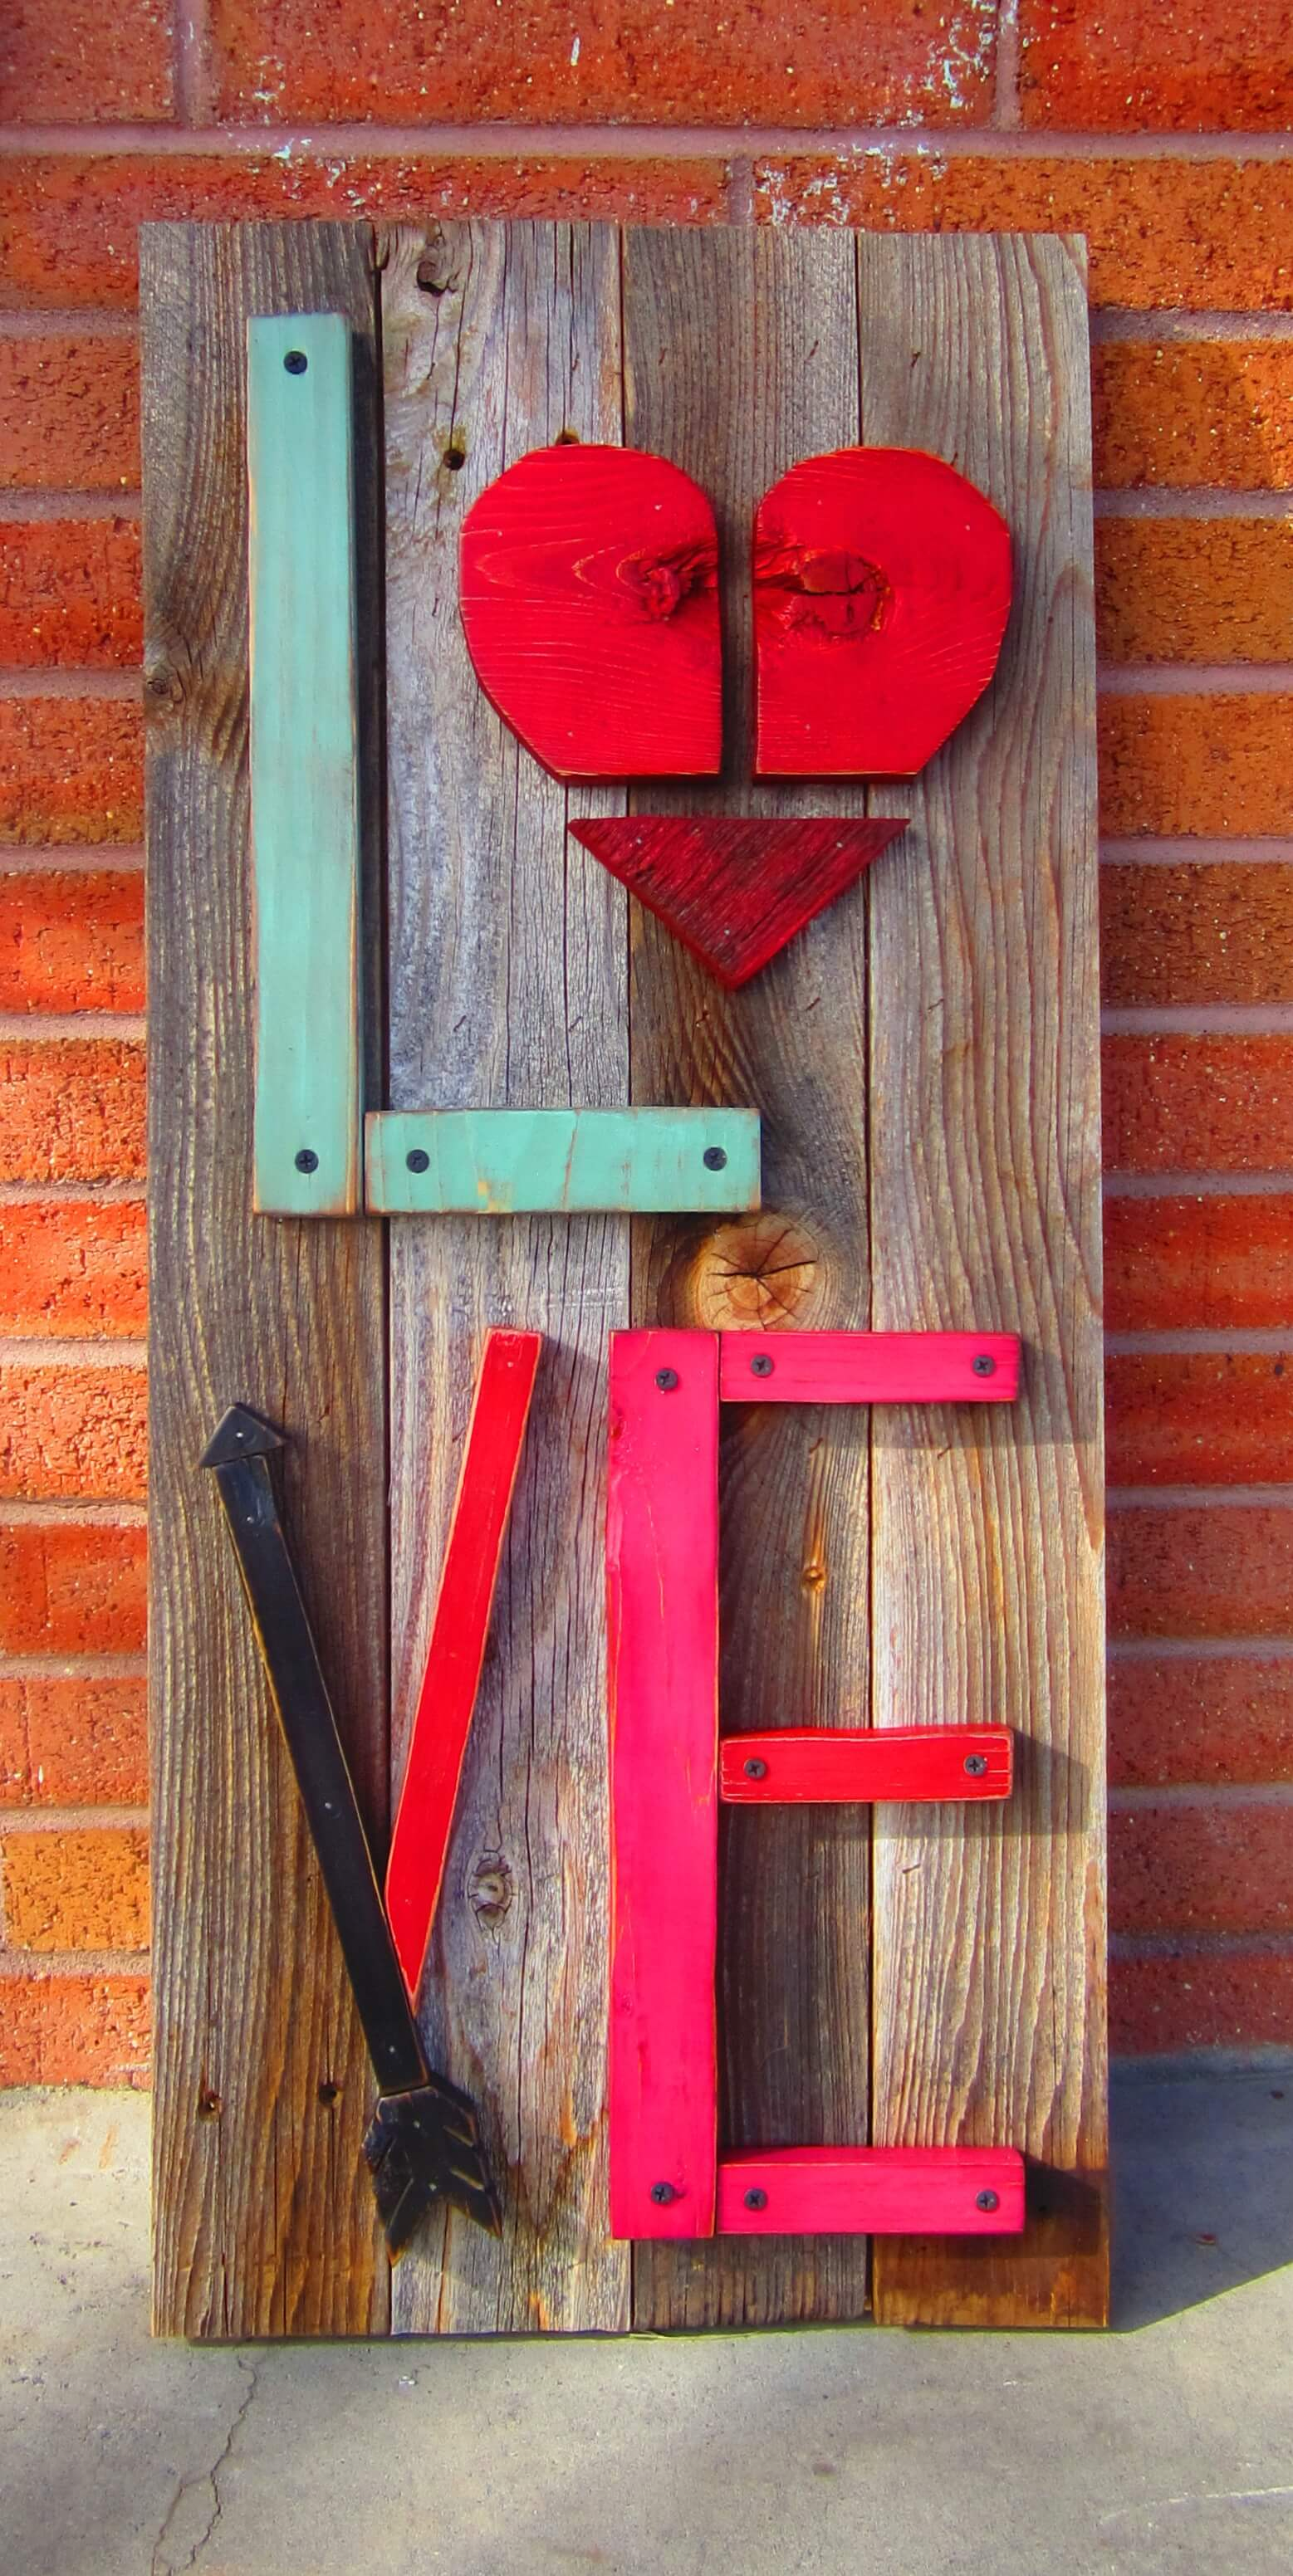 DIY Industrial L-O-V-E with Reclaimed Wood